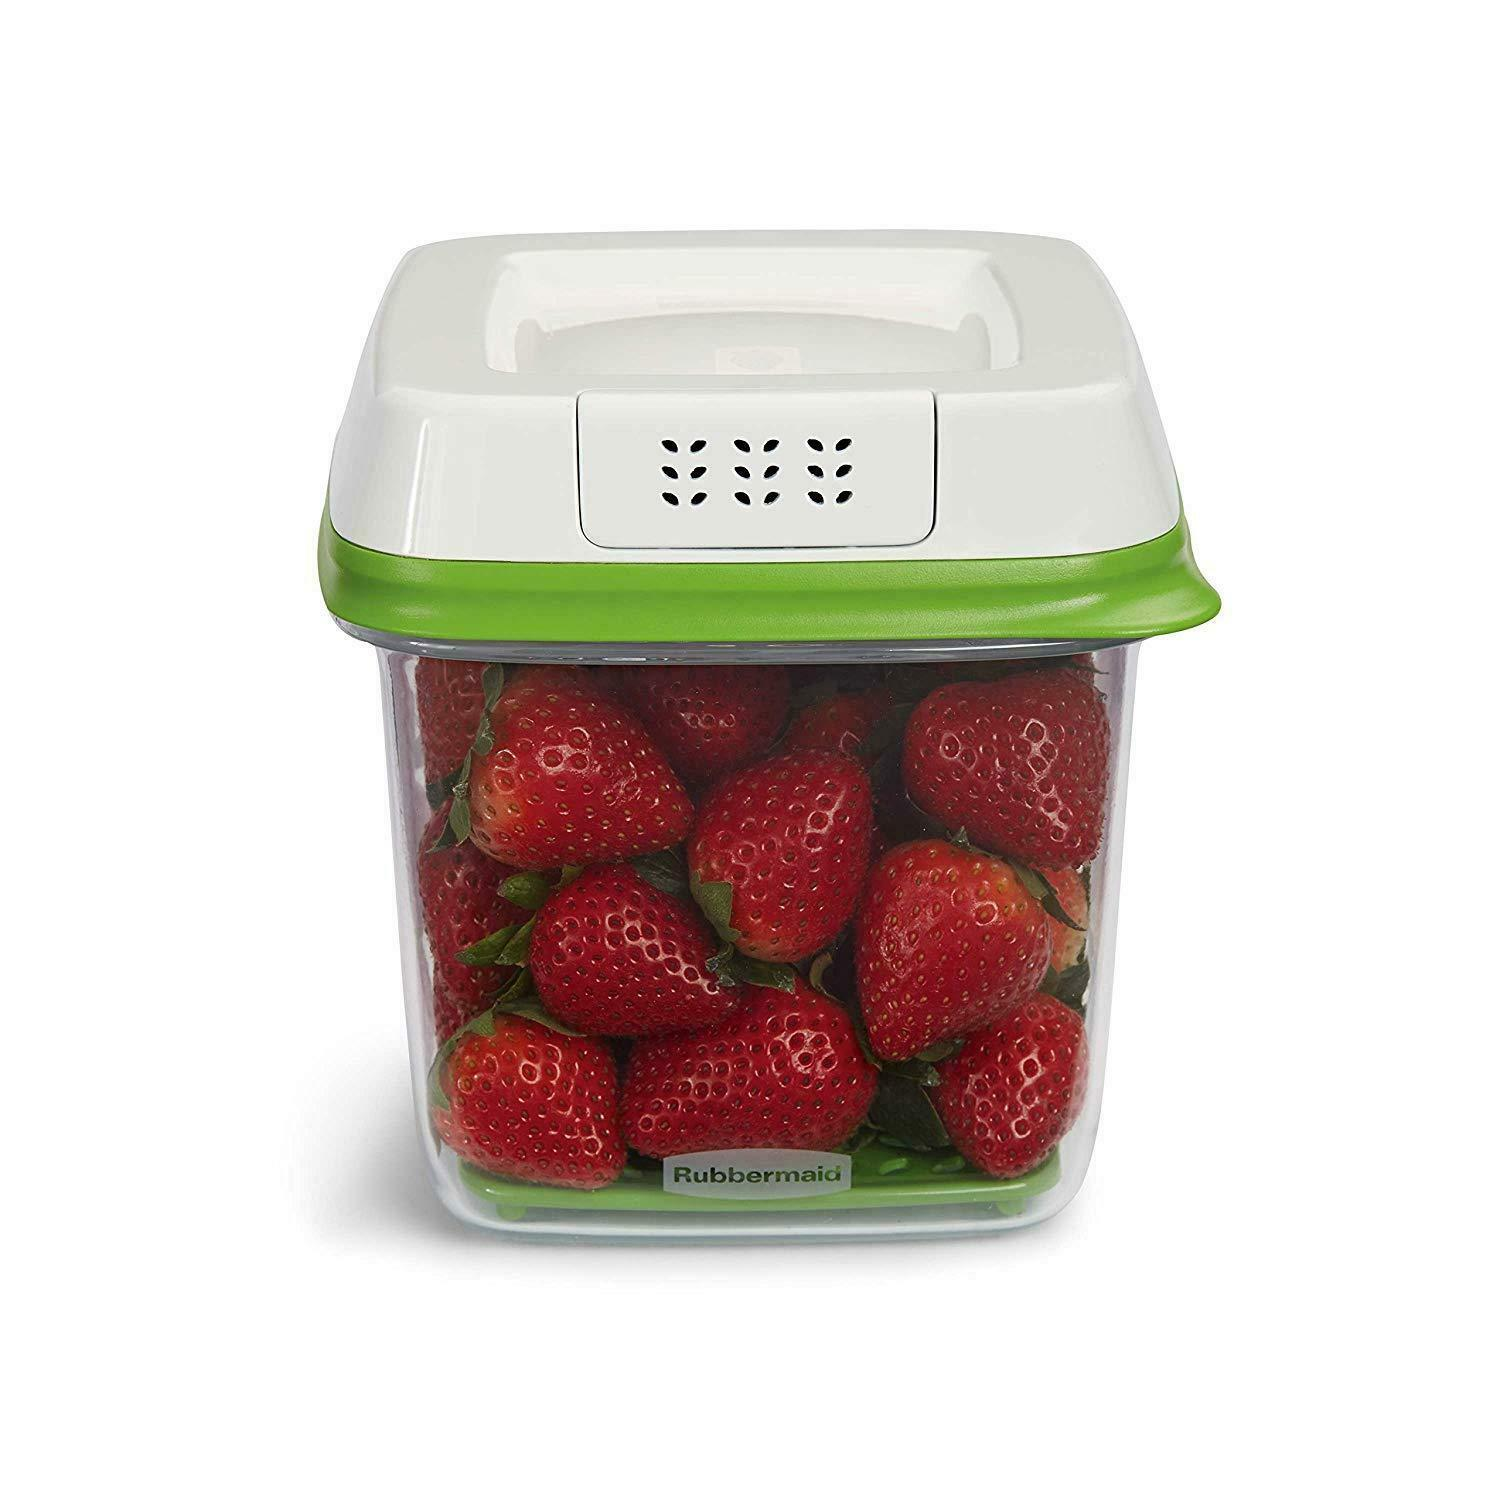 FreshWorks Produce Saver Food Storage Container, Medium, 6.3 Cup, Green 1